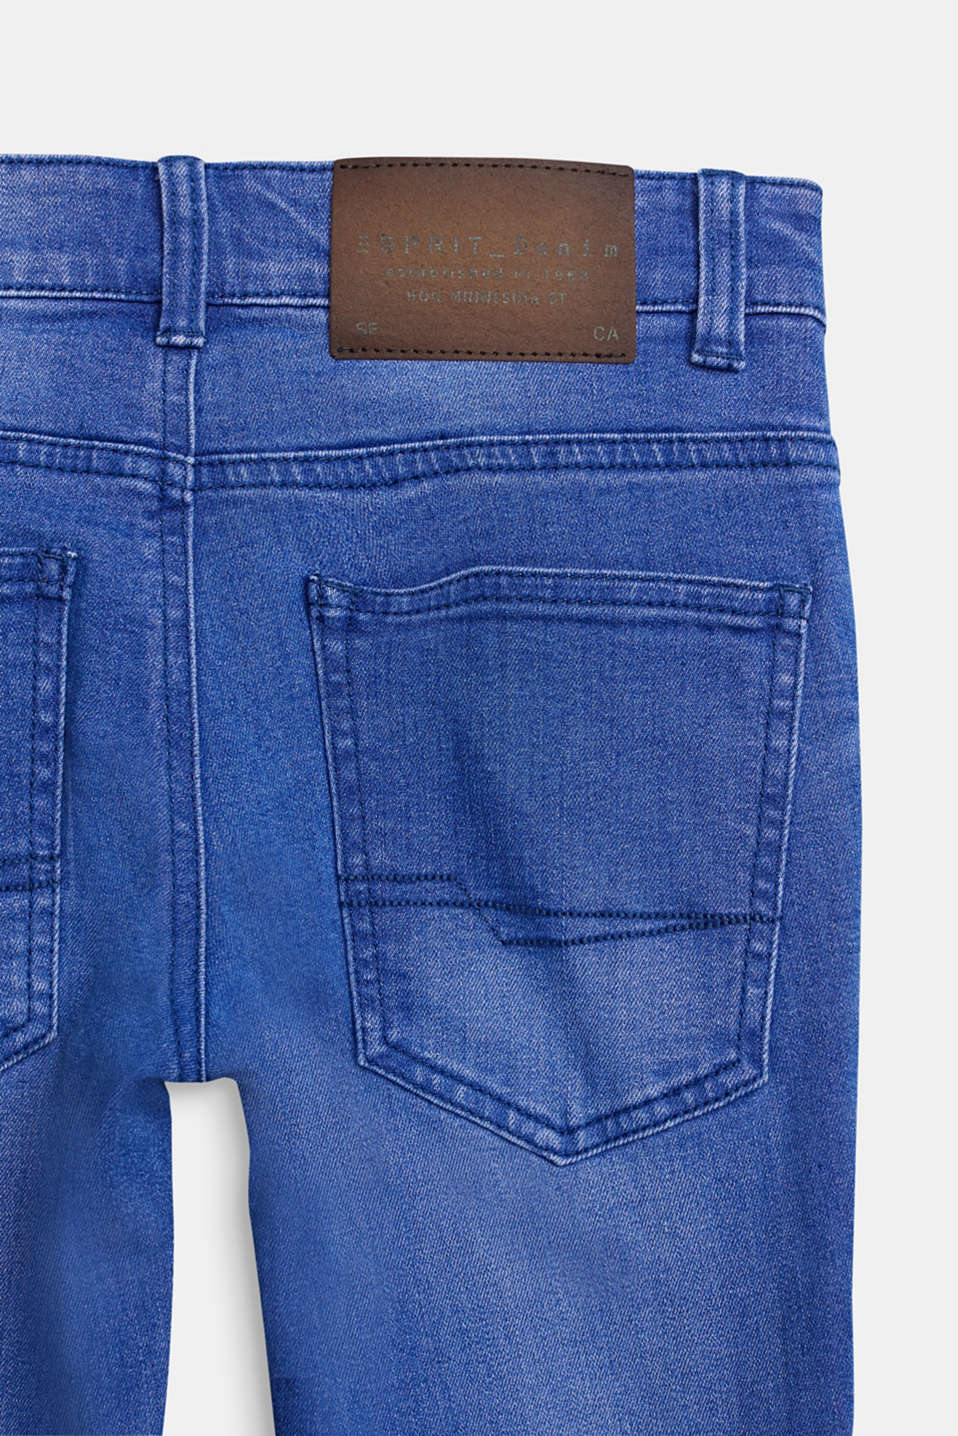 Washed stretch jeans with an adjustable waistband, LCBRIGHT BLUE DE, detail image number 3